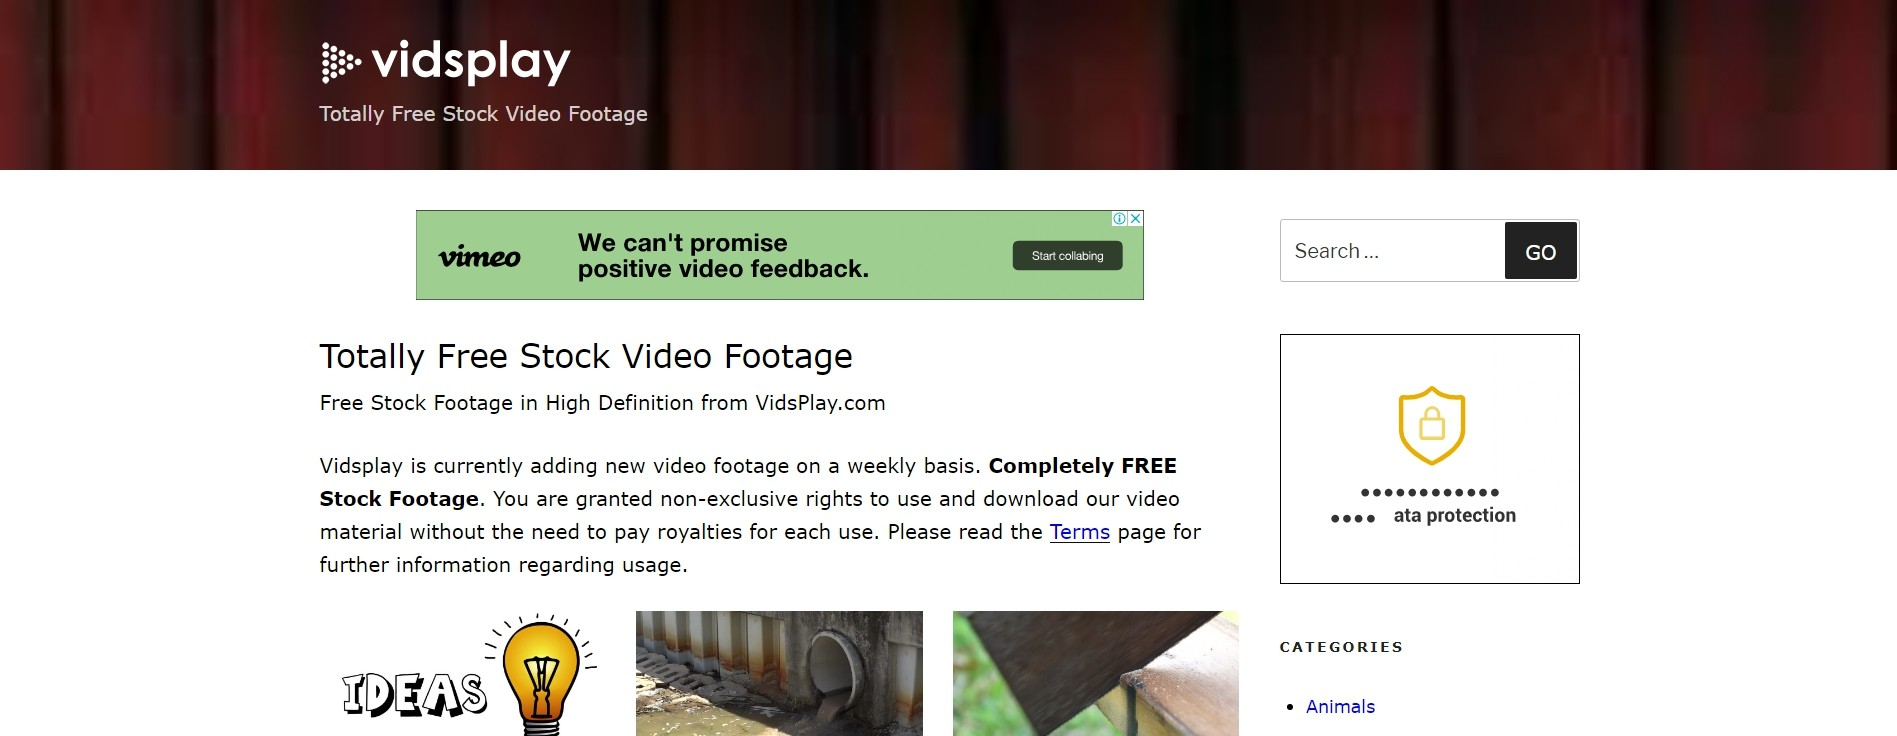 Totally Free Stock Video Footage - Vidsplay.com